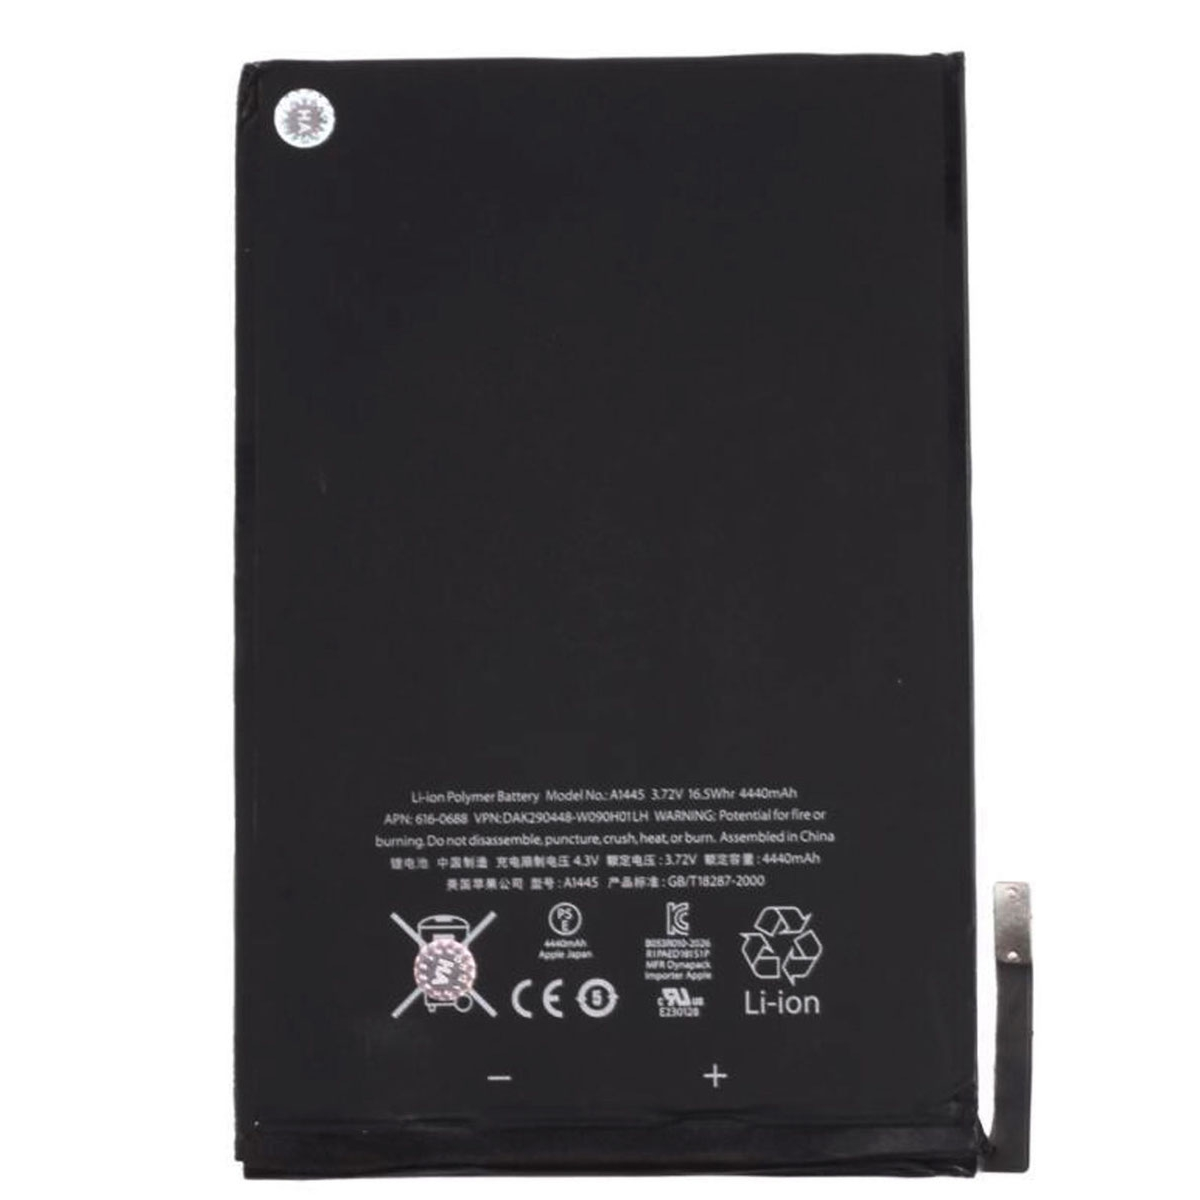 Аккумулятор Apple iPad Mini (P/N: 616-0687) 4440mAh - Аккумуляторы Apple - Apple iPhone/iPod/iPad